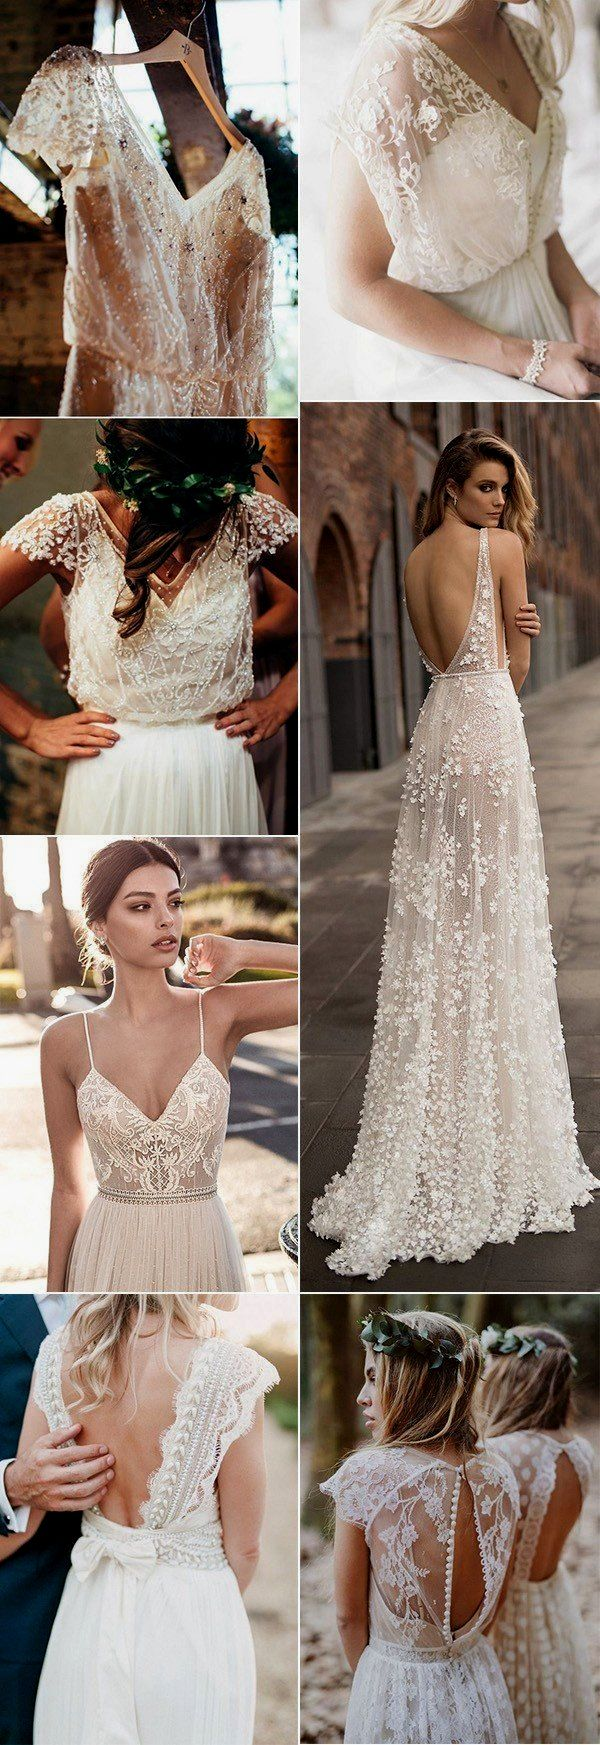 Trying to find the perfectlace wedding dress? Check our cute fasten wedding ceremony robes in simplistic patterns, miracle solutions, very long sleeves, all in plus and petite measures! lace wedding dresses vintage #laceweddingdresses #weddingdresses – Lisa Dahlke